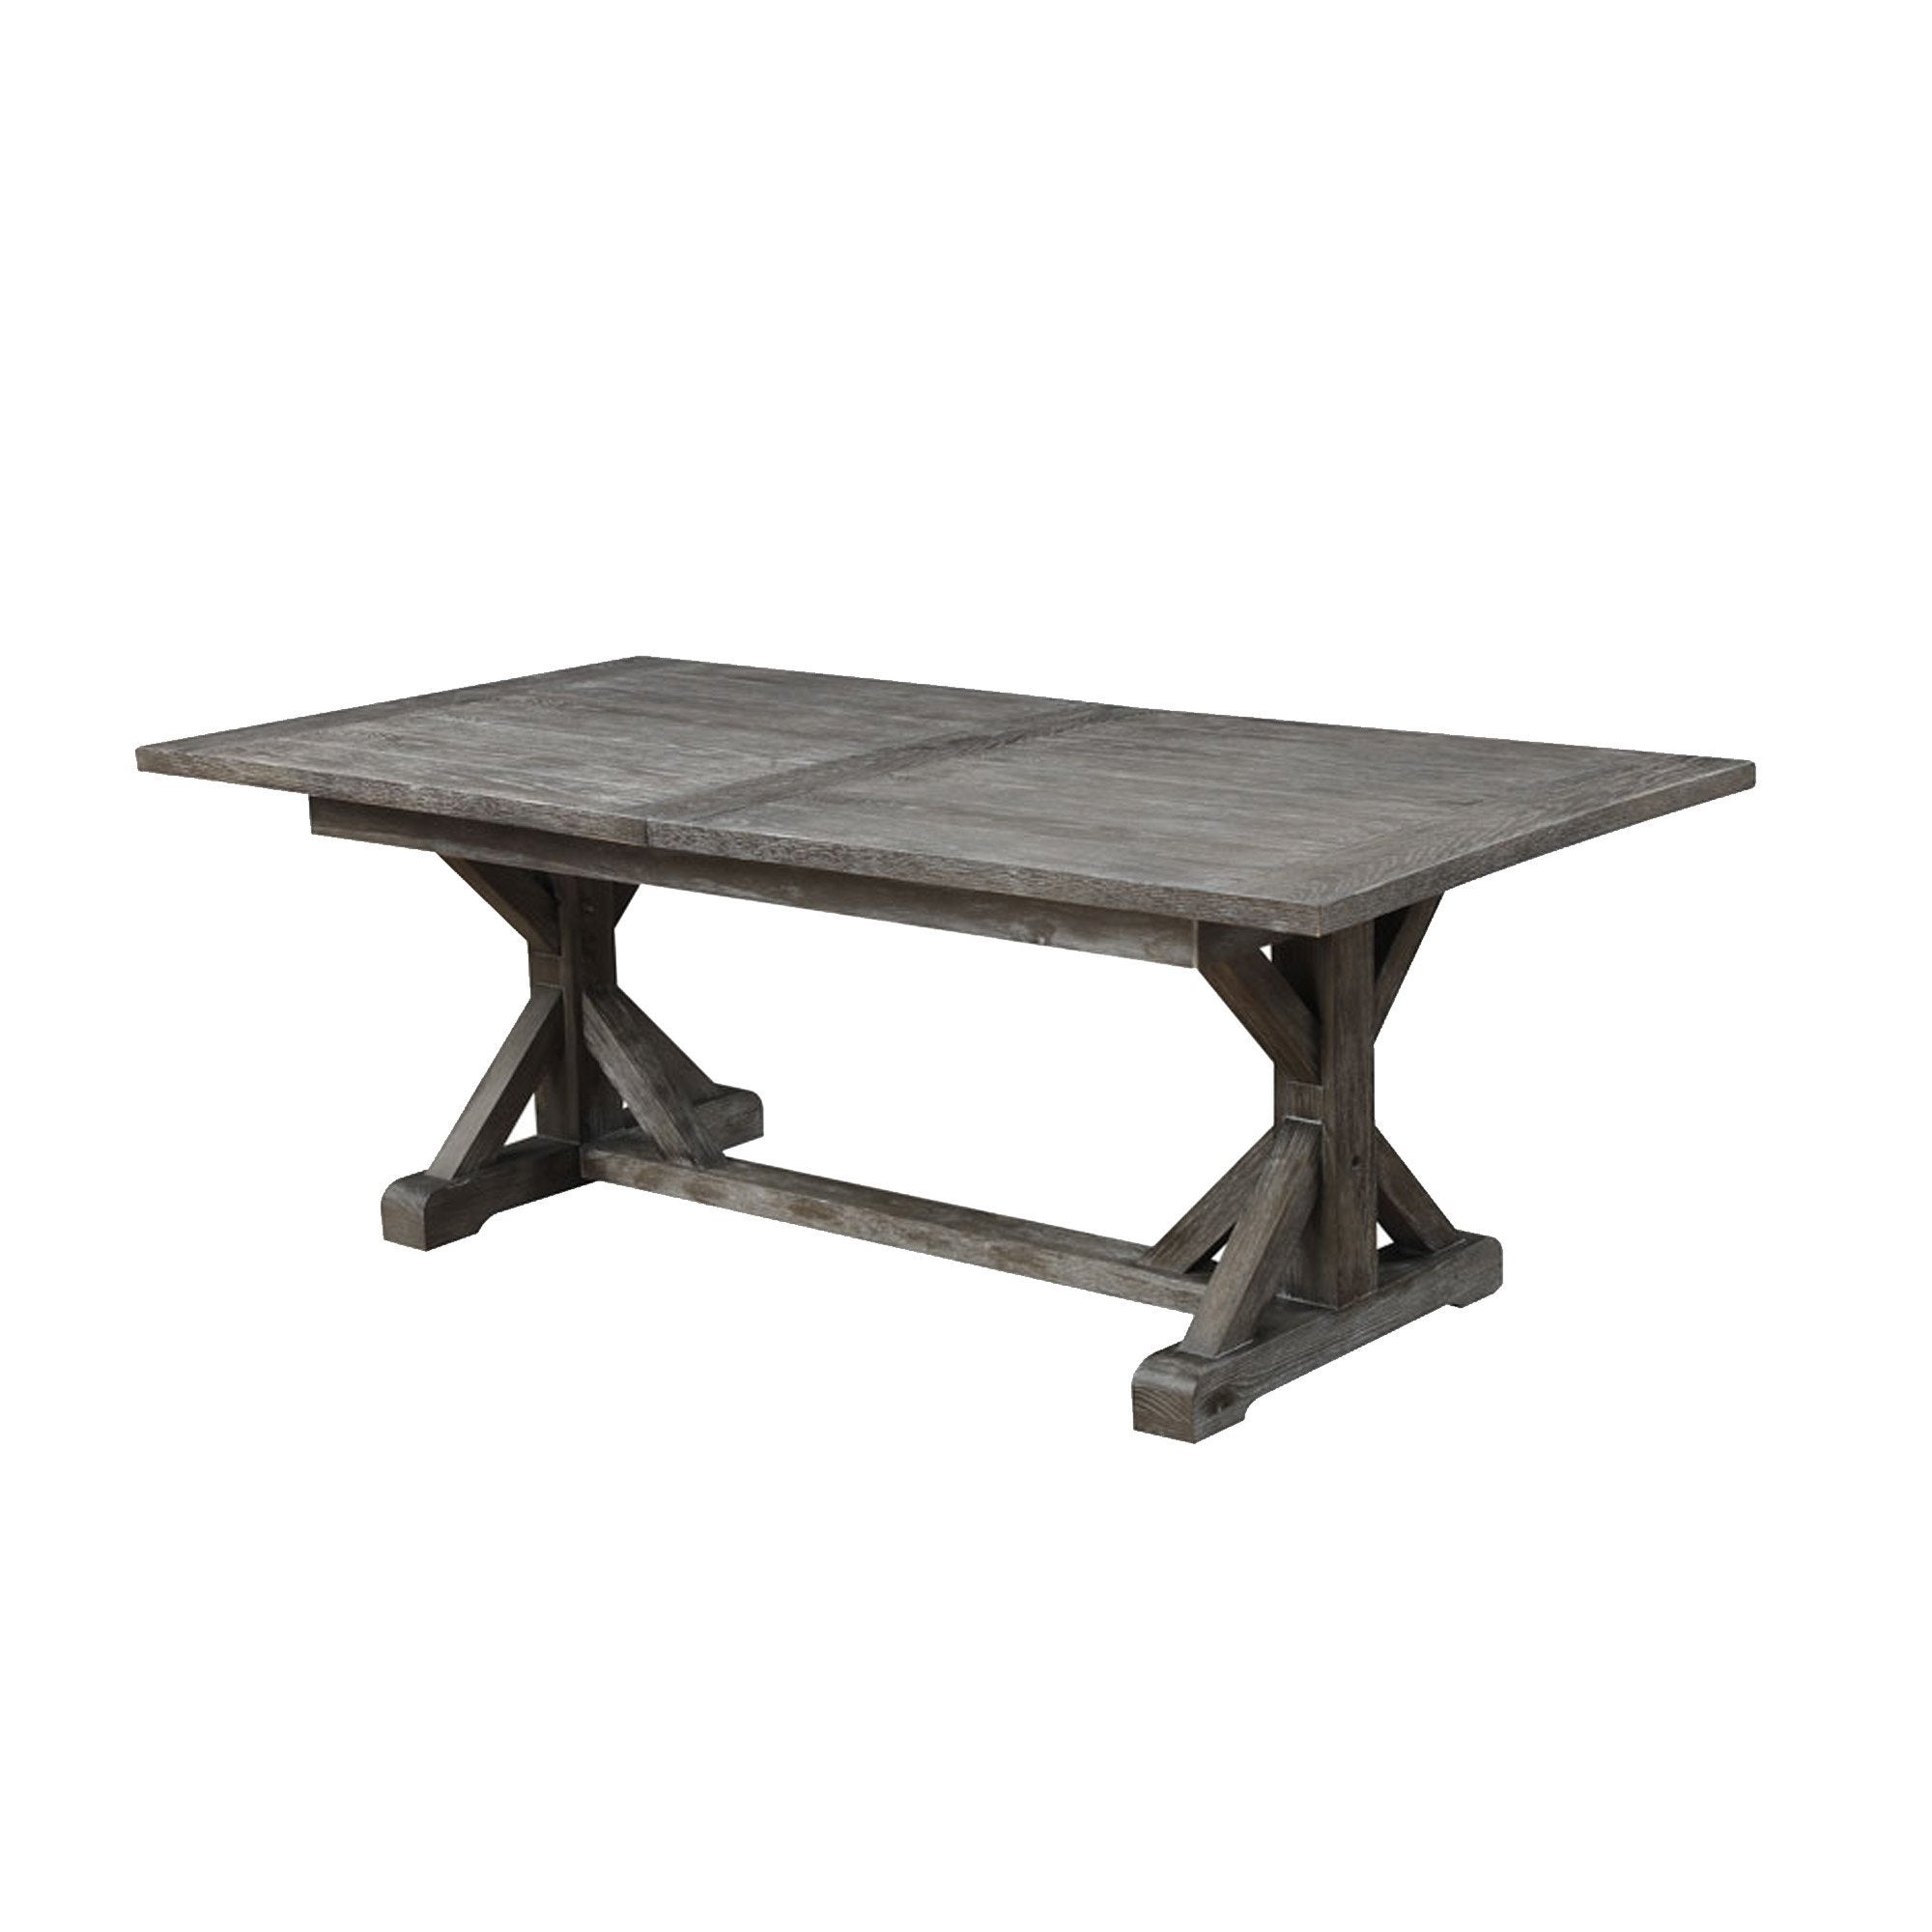 "D350-10-K DINING TABLE TOP W/28"" BUTTERFLY LEAF & BASE RUSTIC CHARCOAL 